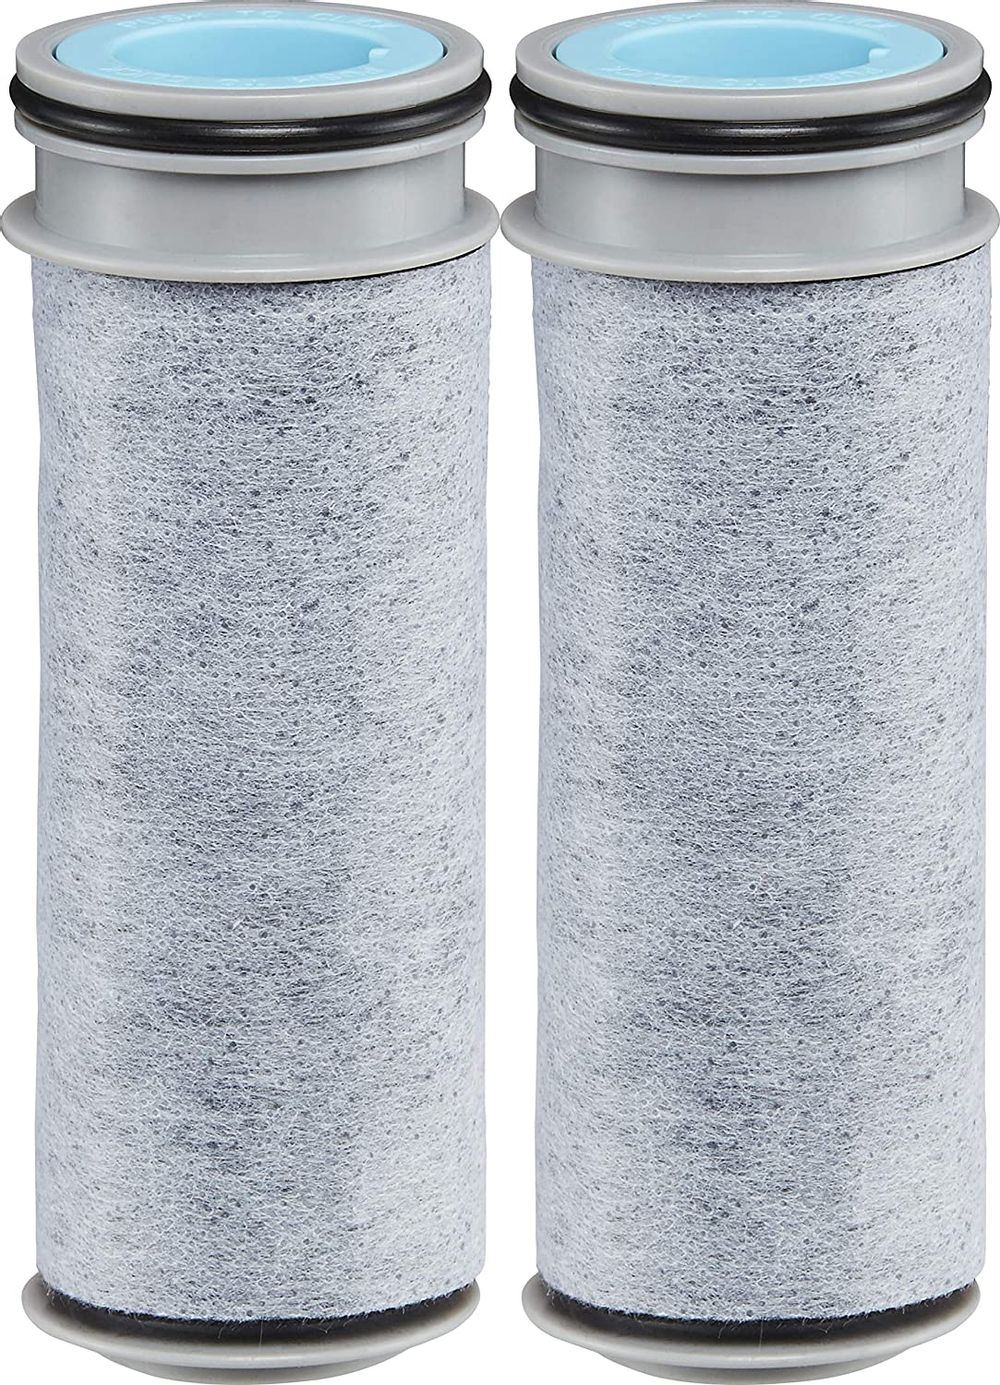 Brita Stream Replacement Filters, 2 Count, Gray